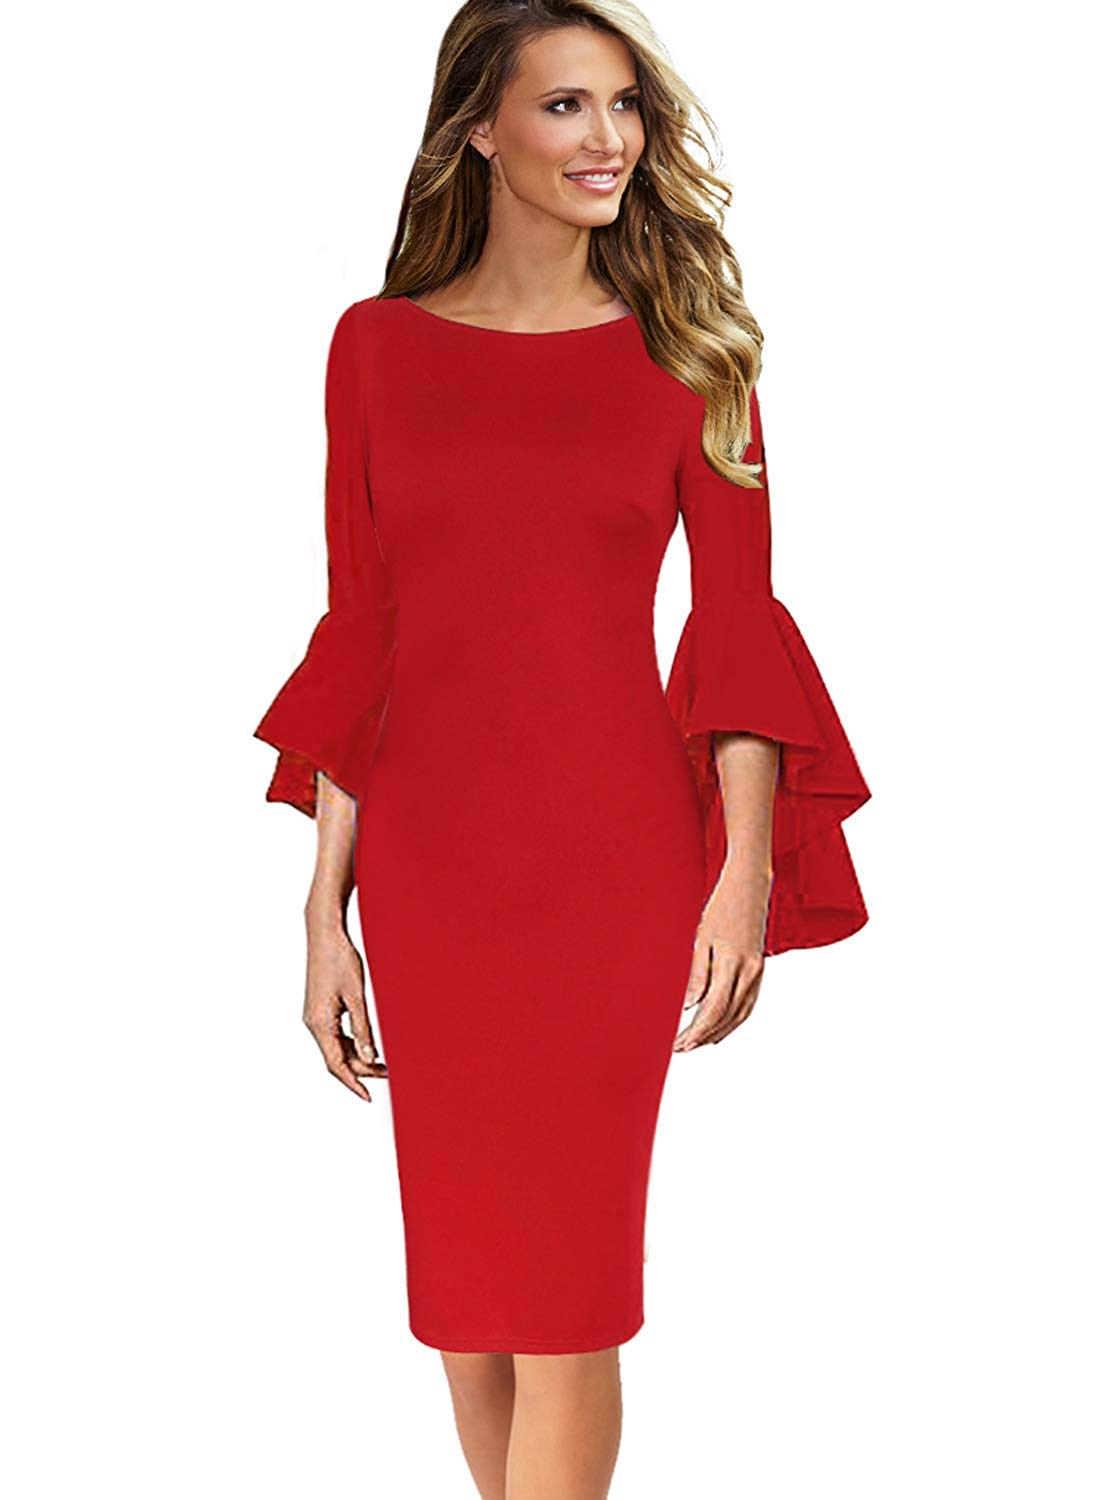 DAILYHAUTE Women's dress WINE / S Haute Edition Women's Bell Sleeves Cocktail Party Dress